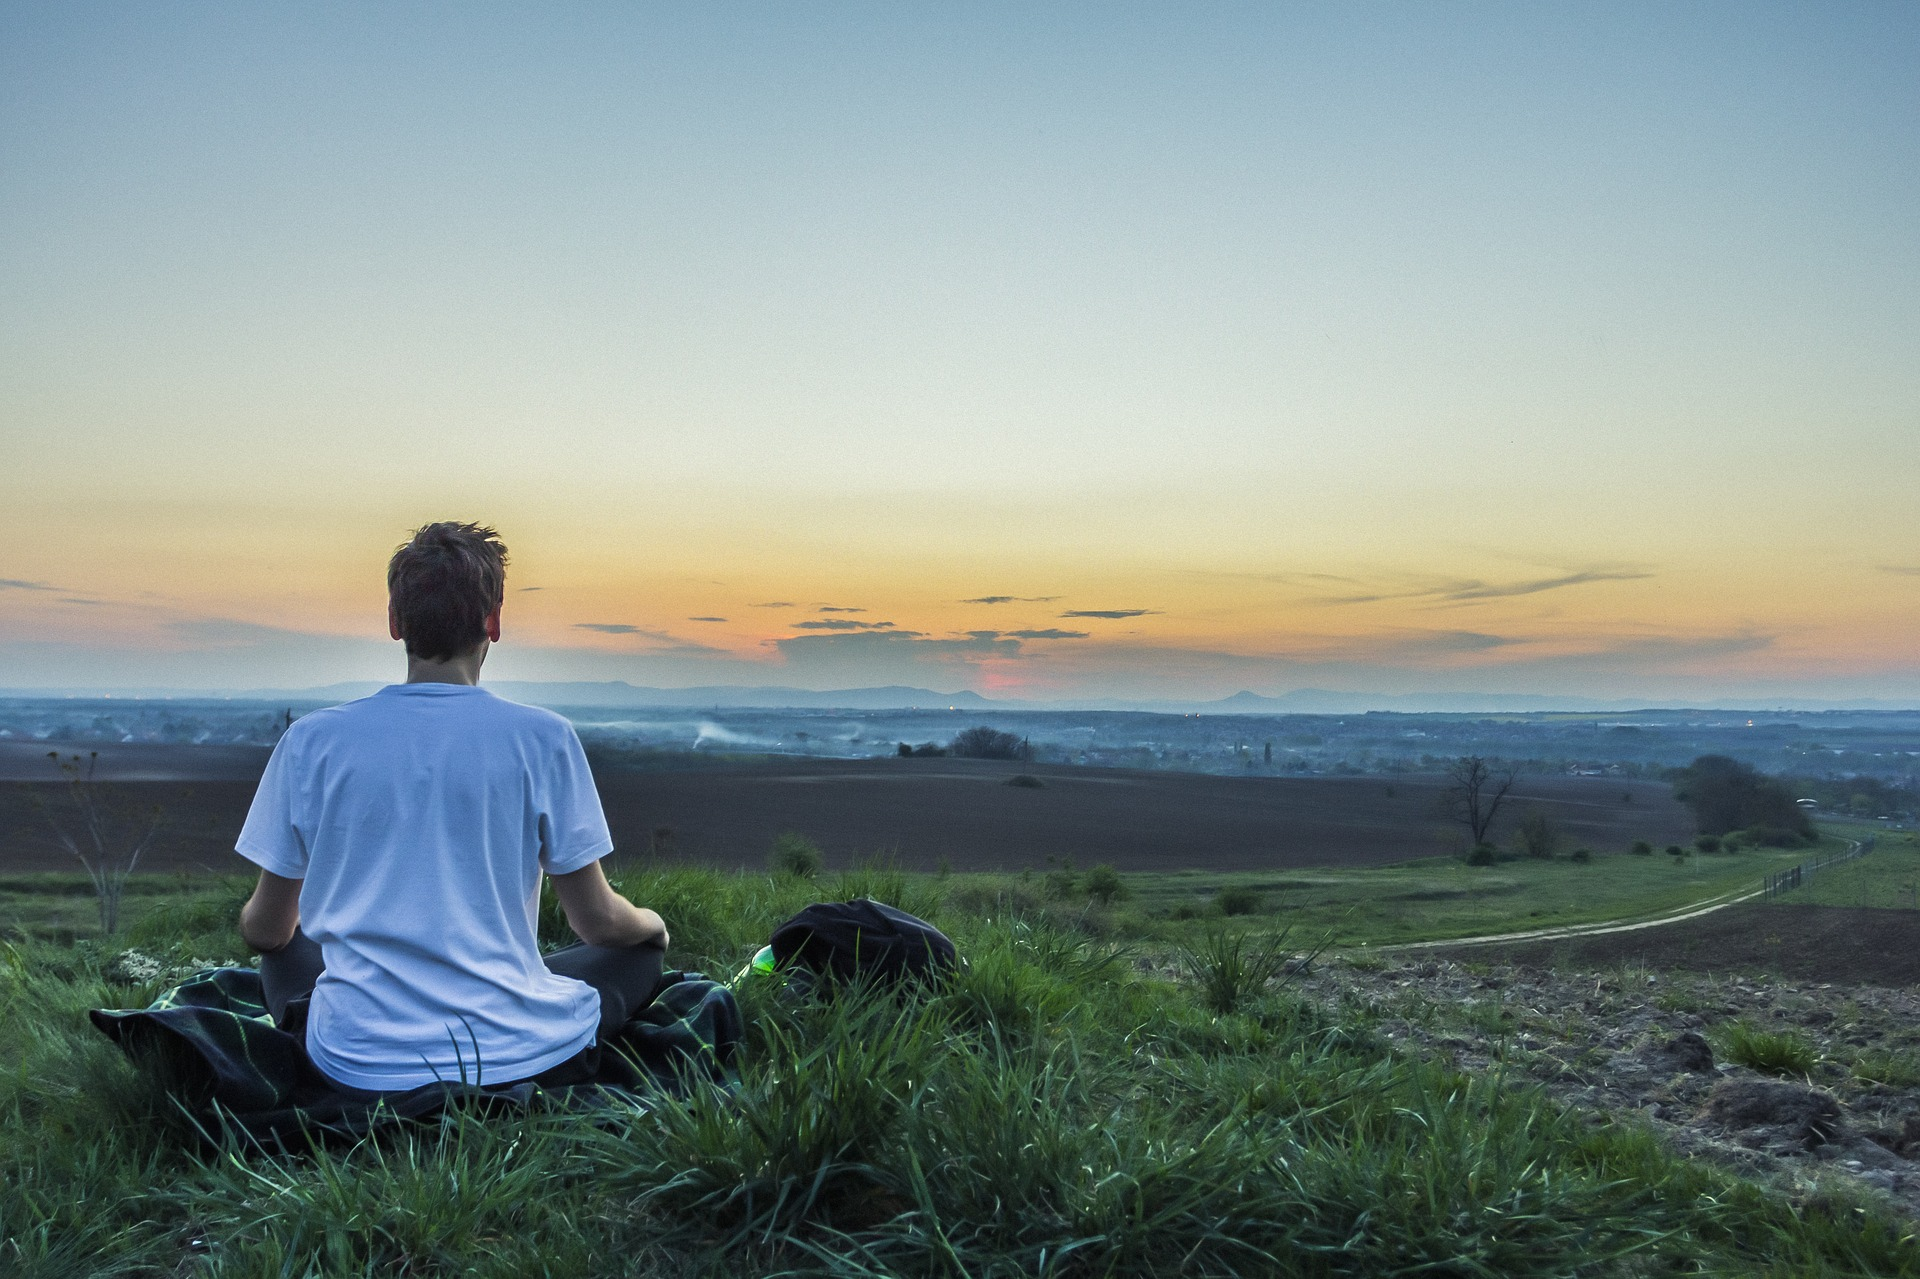 Meditation can help you remain calm throughout stressful or chaotic situations.